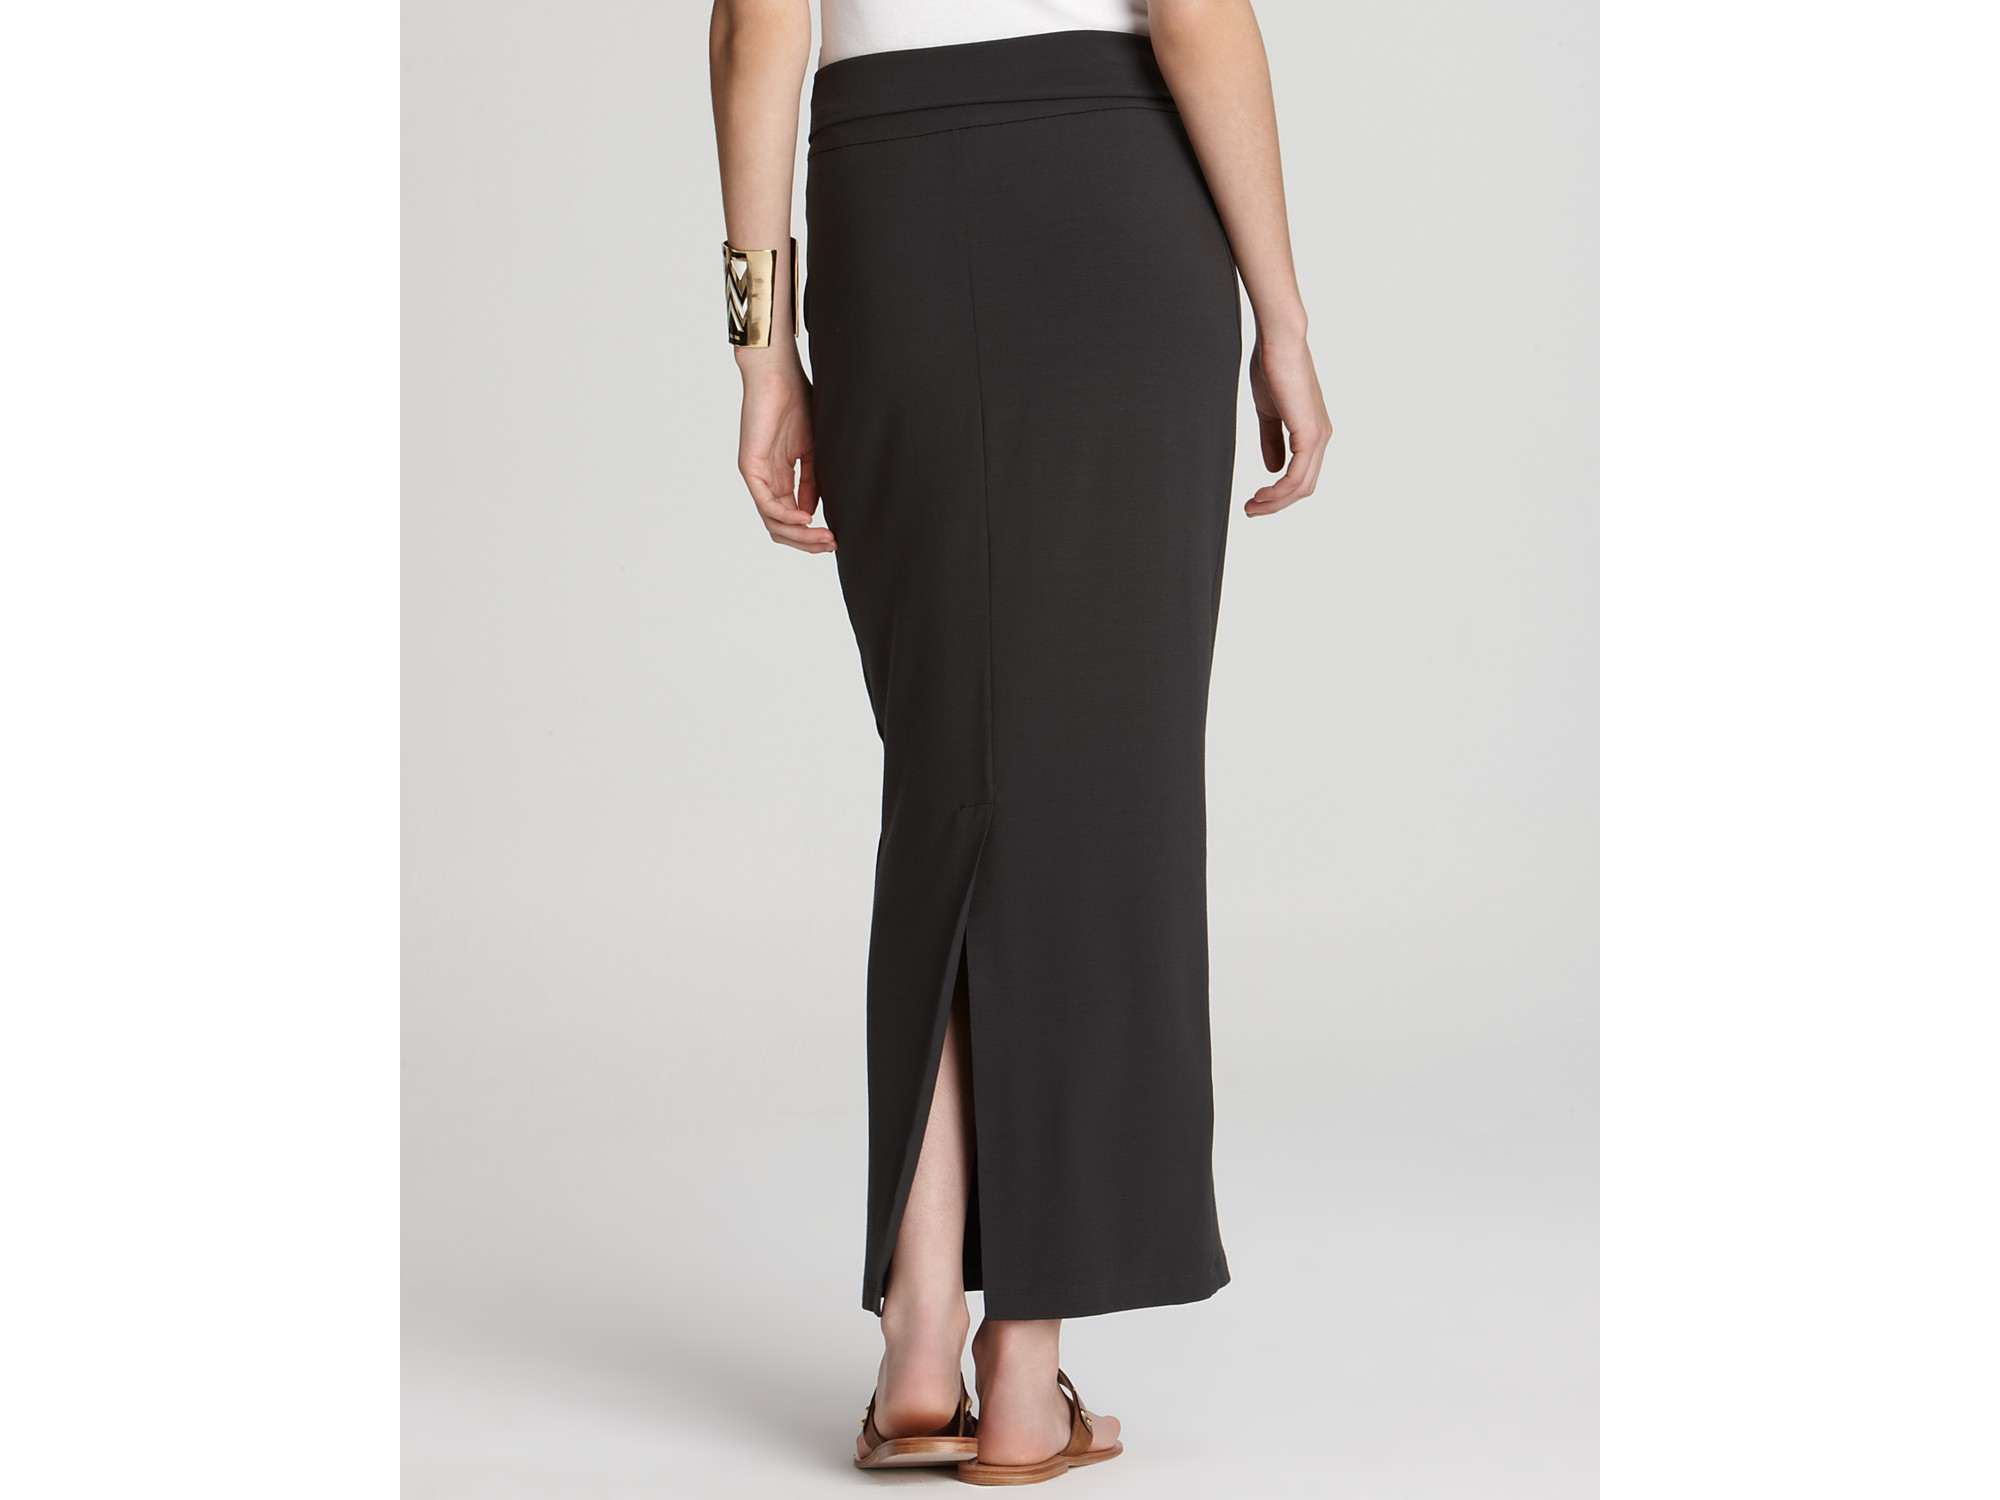 Eileen fisher Foldover Maxi Pencil Skirt in Black | Lyst